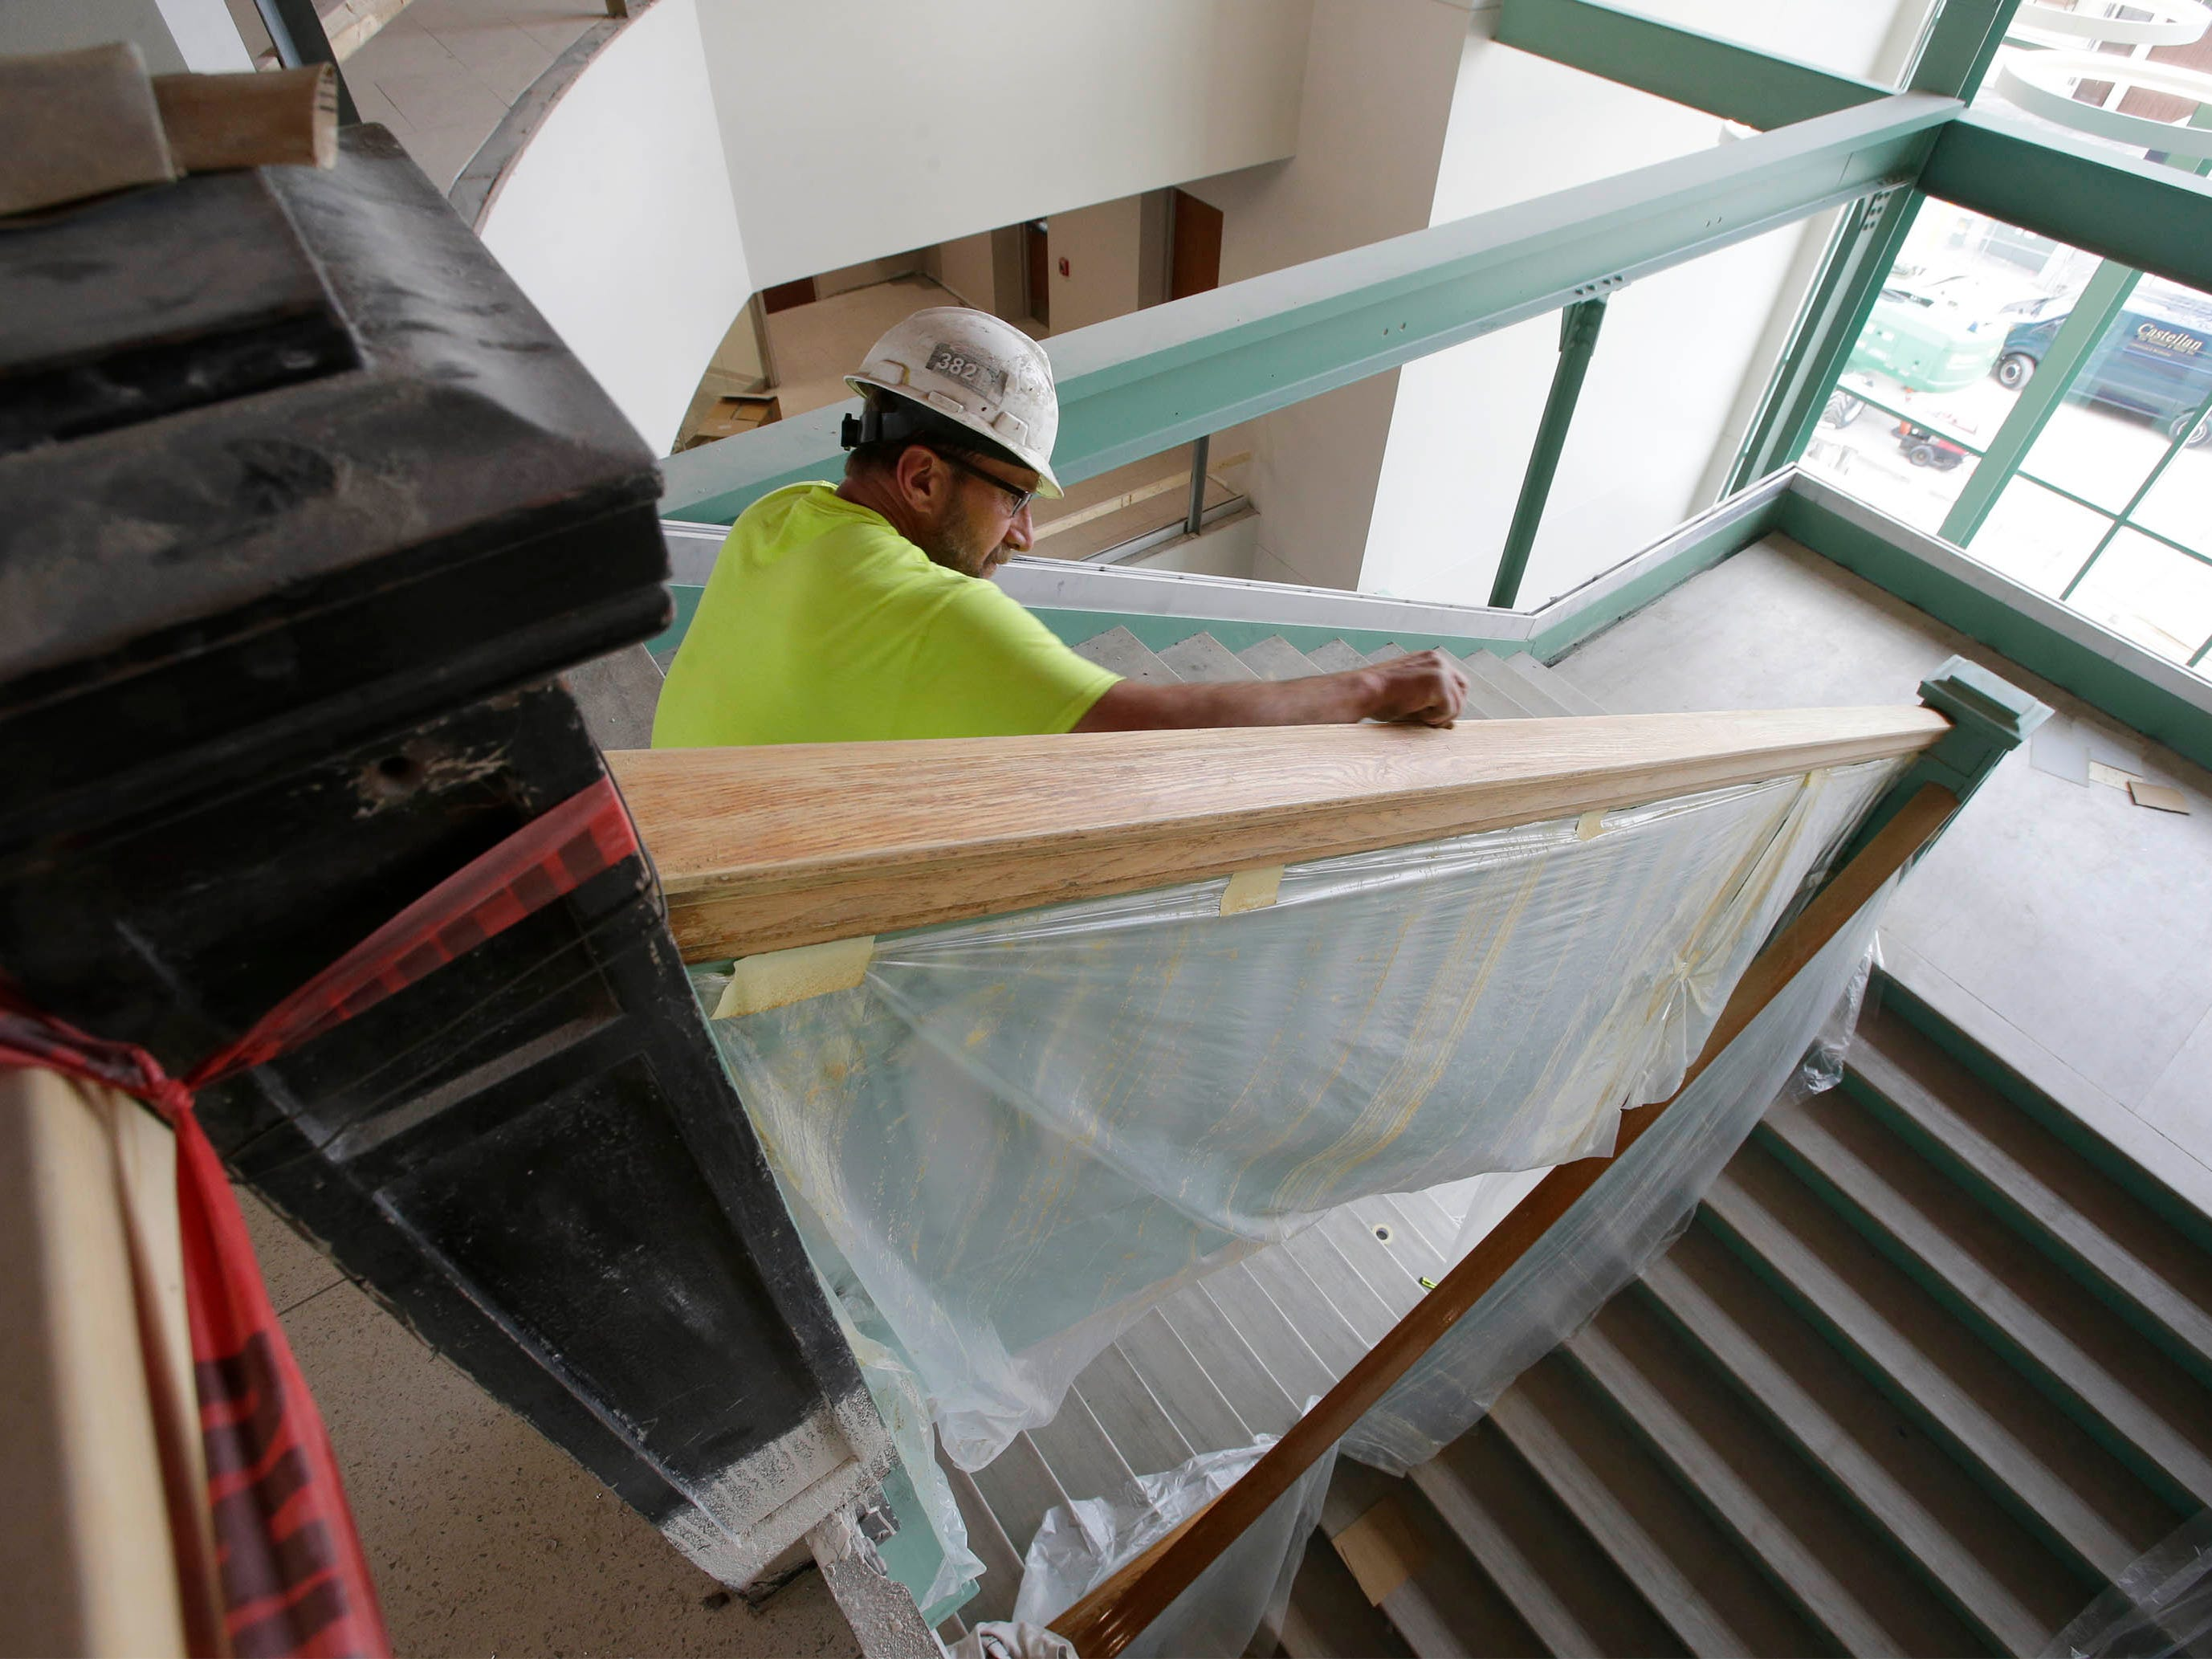 Jerry Ploeckelmann of Lee Color Studio of Manitowoc, Wis, prepares the hand rail at Sheboygan City Hall for refinishing, Tuesday, May 7, 2019, in Sheboygan, Wis.